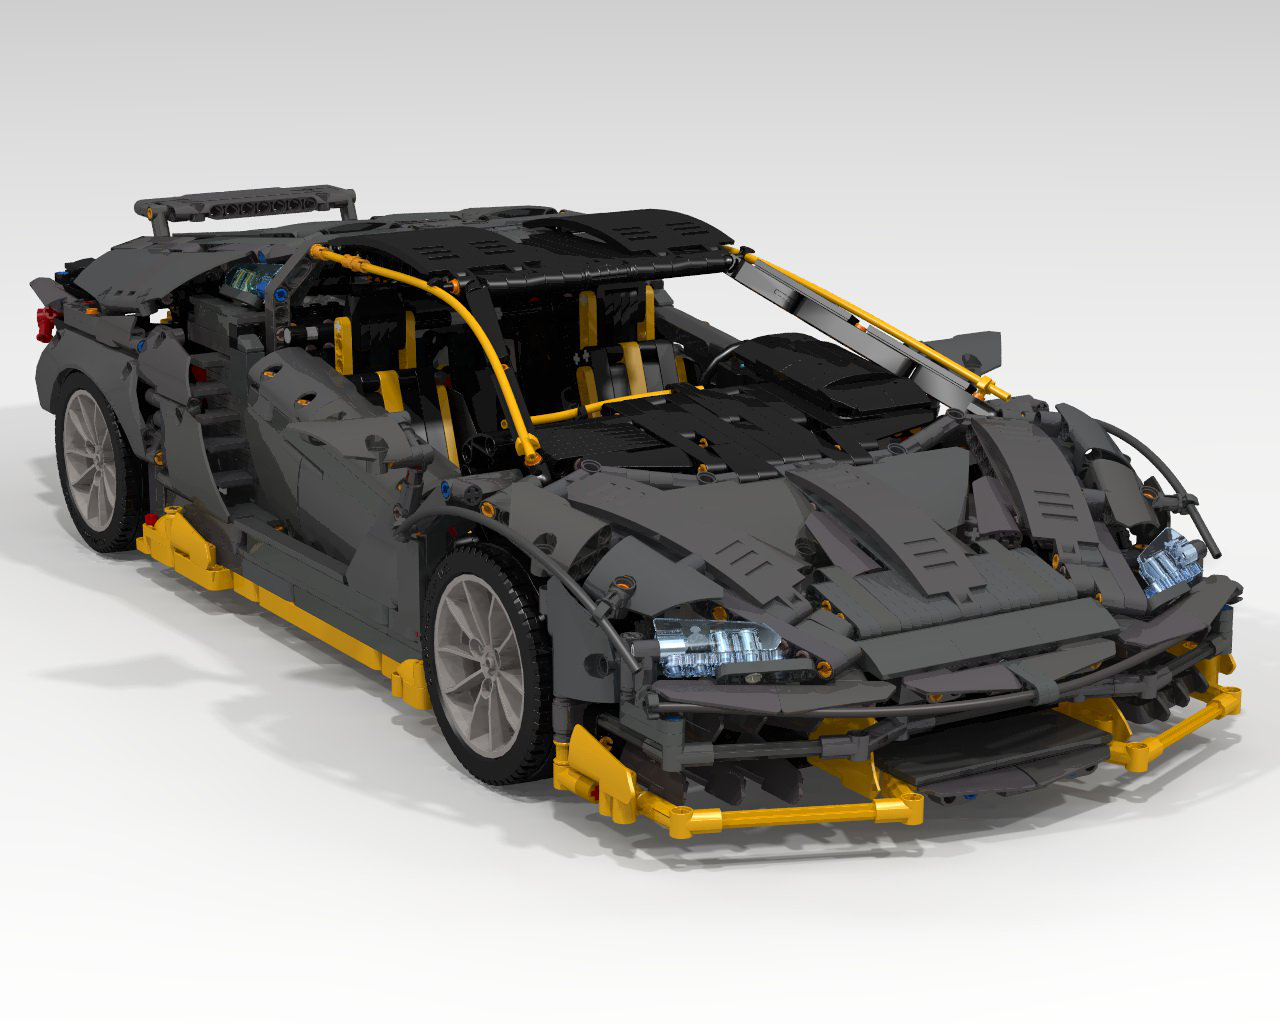 Lego Lamborghini Centenario Wants To Sit On Your Desk Will You Help It Carmojo If It Gets 10 000 Votes L Lamborghini Centenario Lamborghini Super Cars